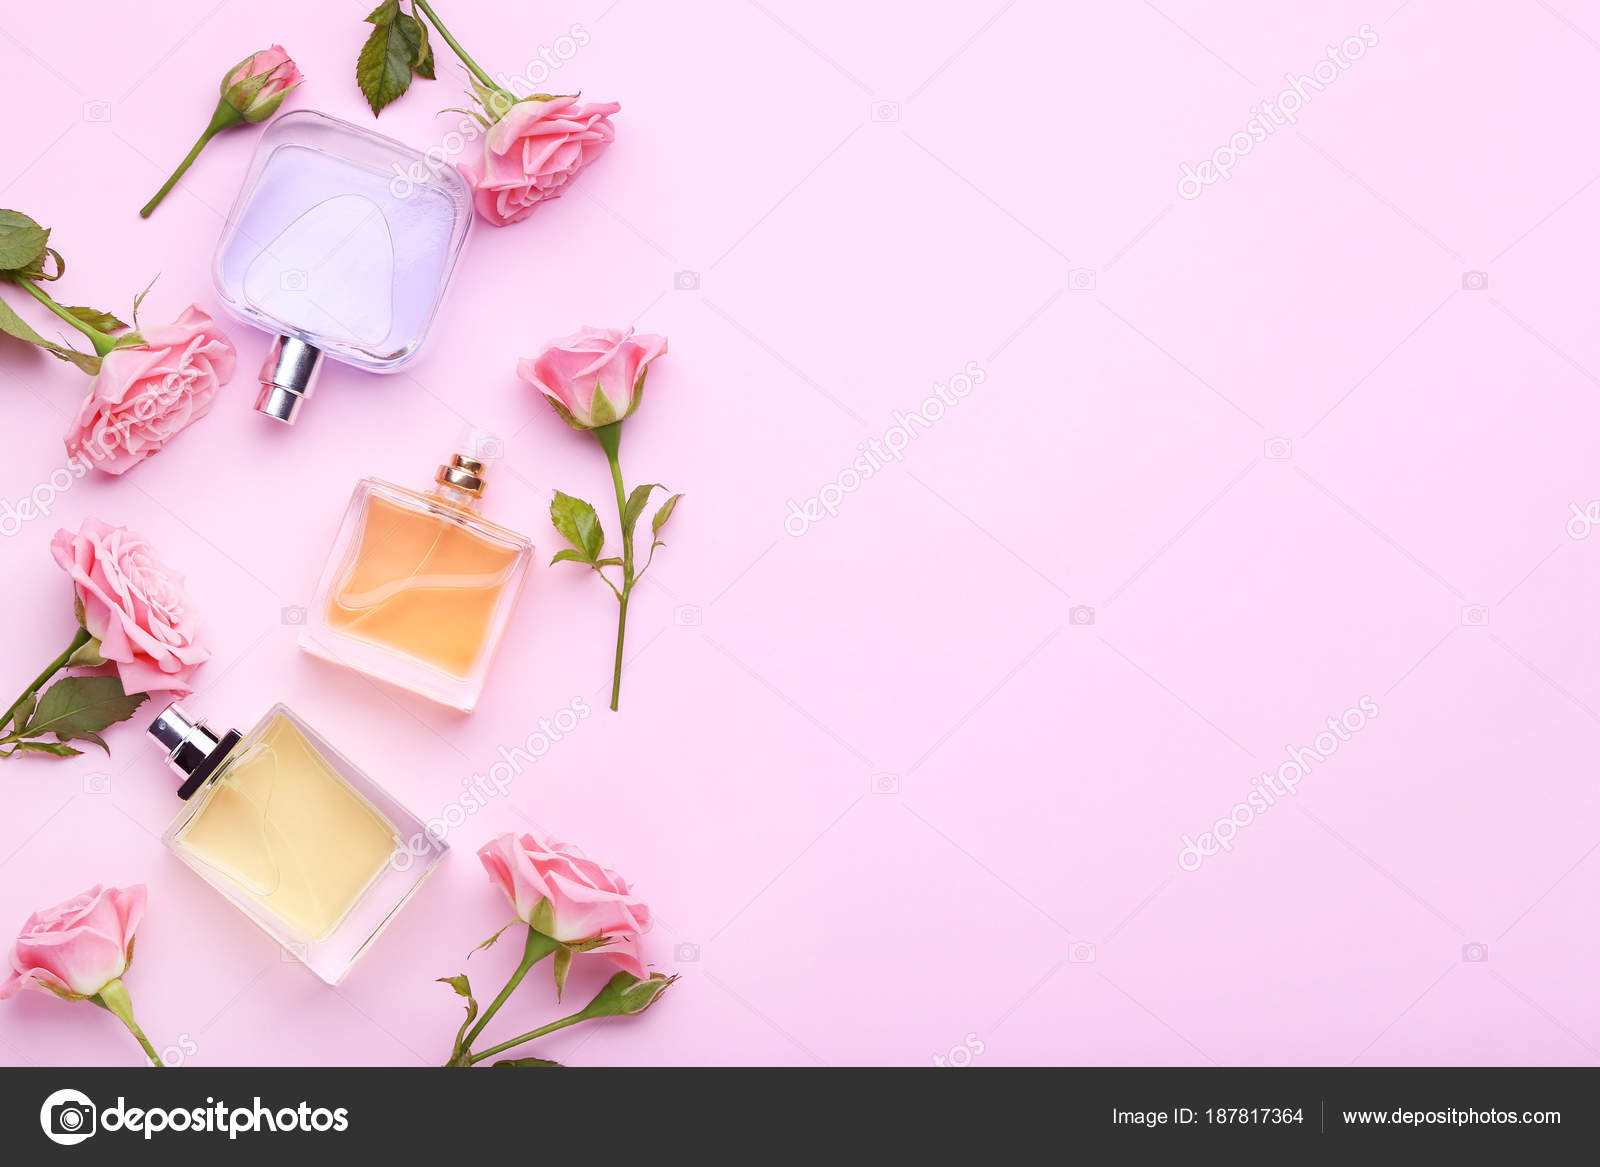 Perfume bottles flowers pink background stock photo 5seconds perfume bottles flowers pink background stock photo mightylinksfo